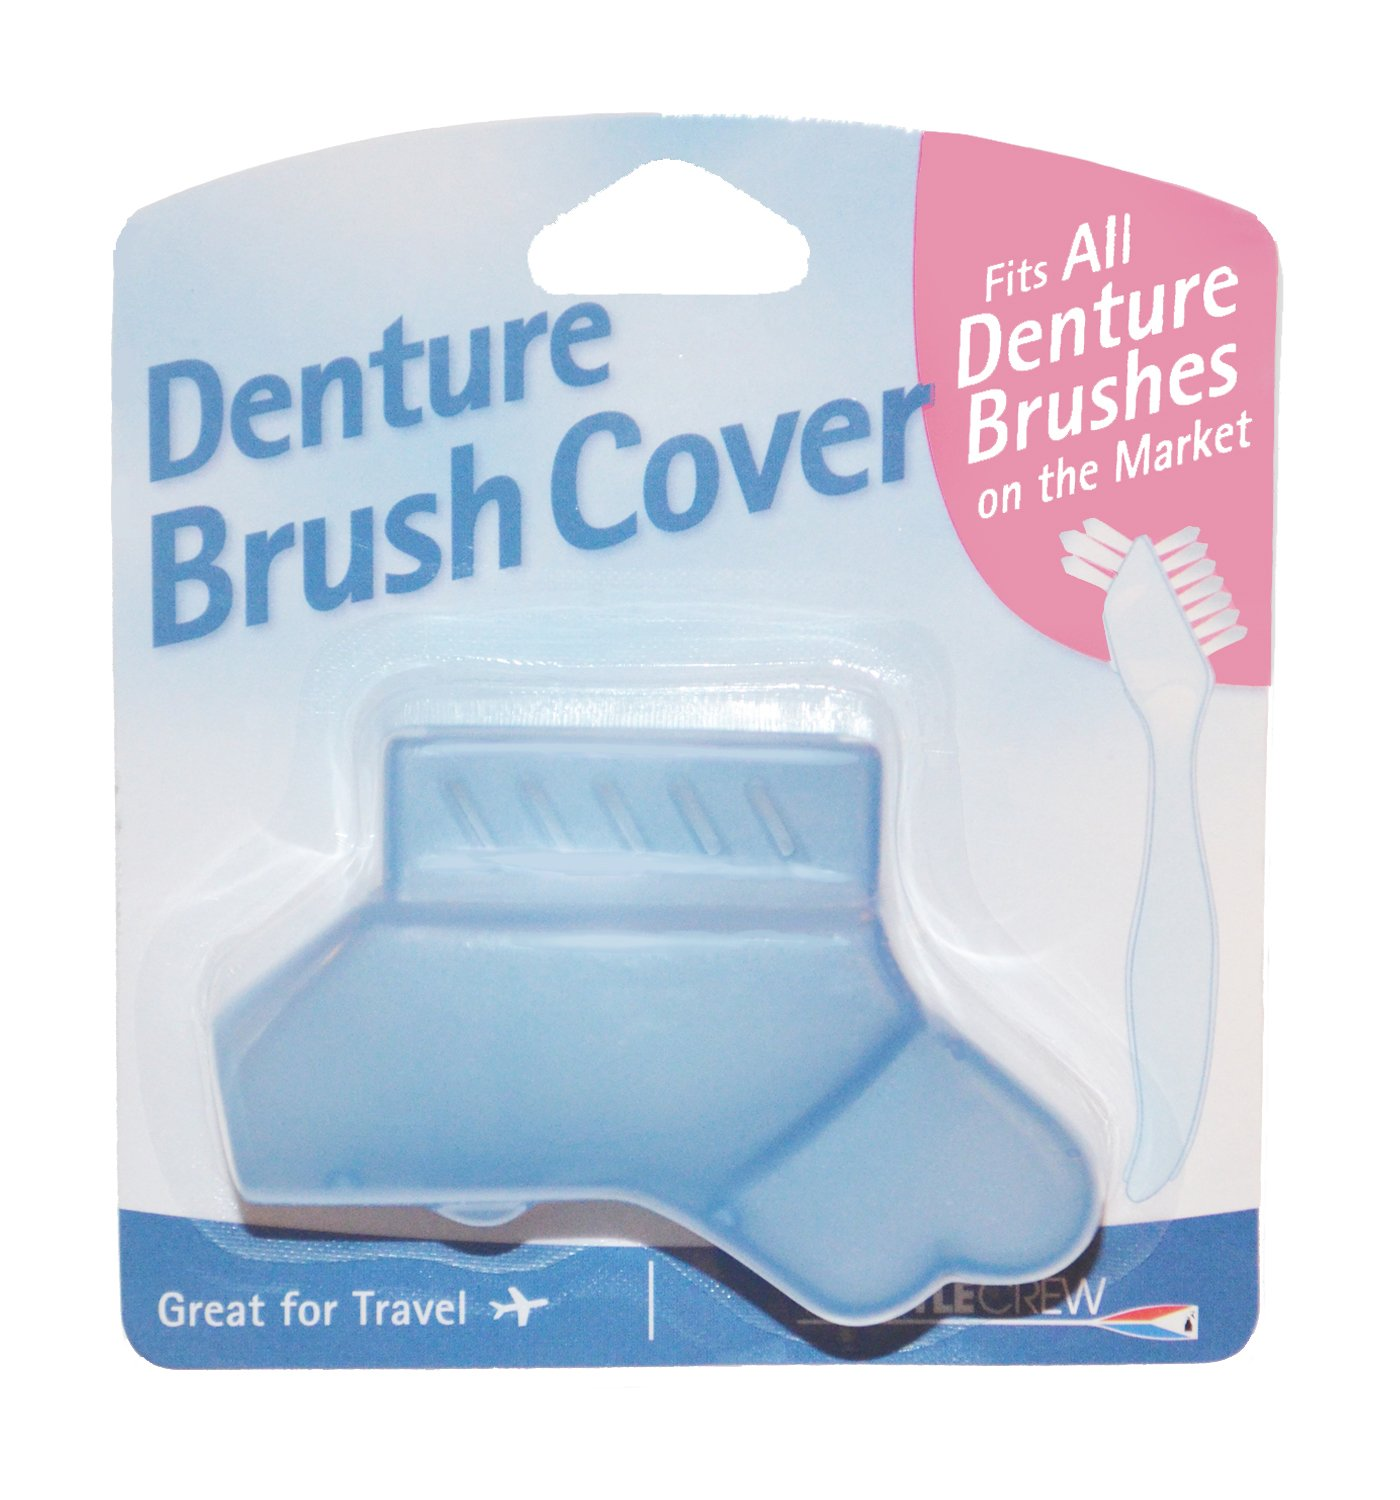 Denture Brush Cover - Fits All Denture Brushes (Blue) The Bottle Crew AX-AY-ABHI-71390